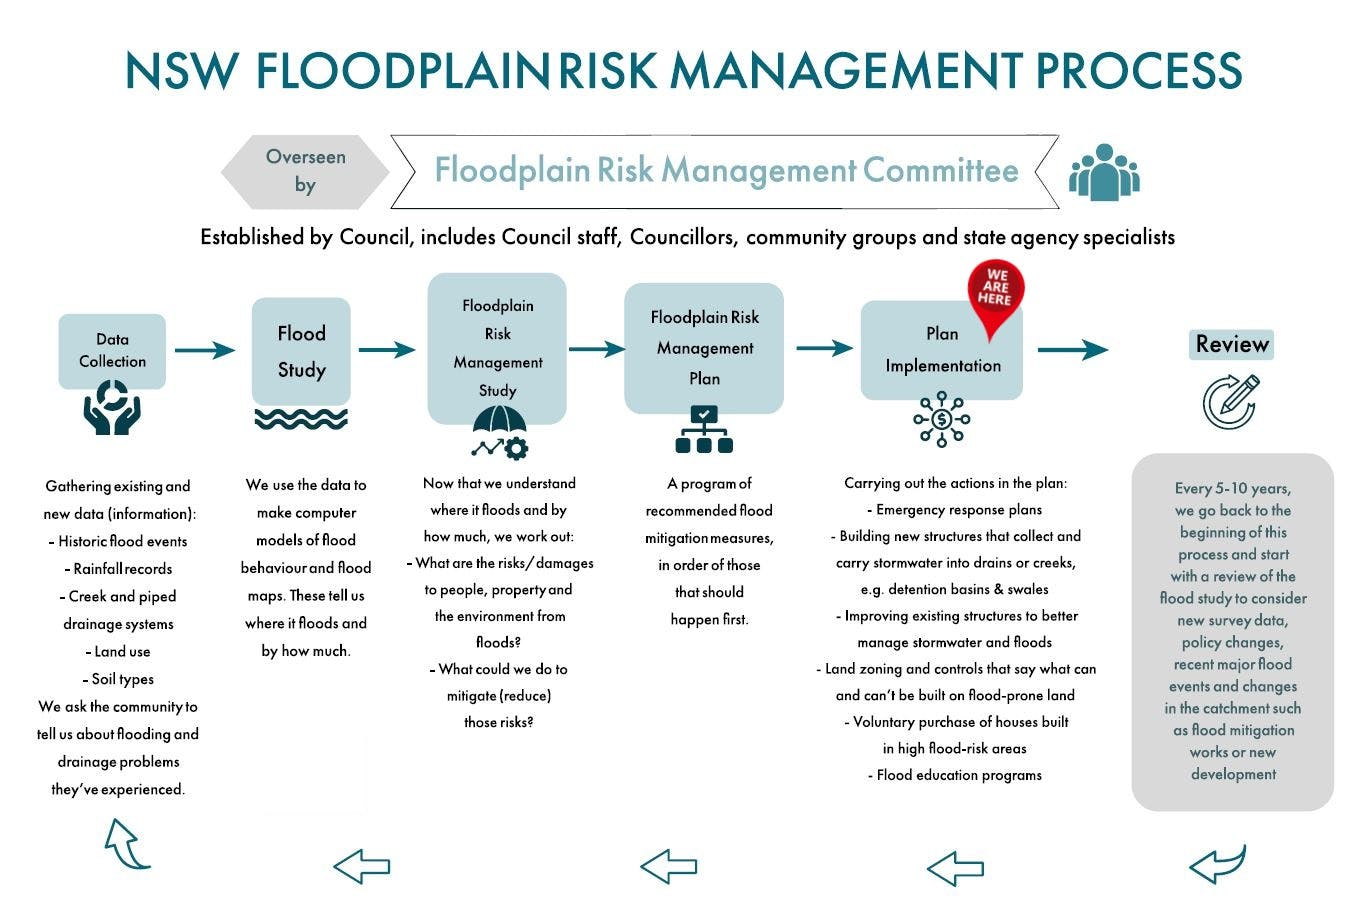 NSW Floodplain Risk Managemement Process